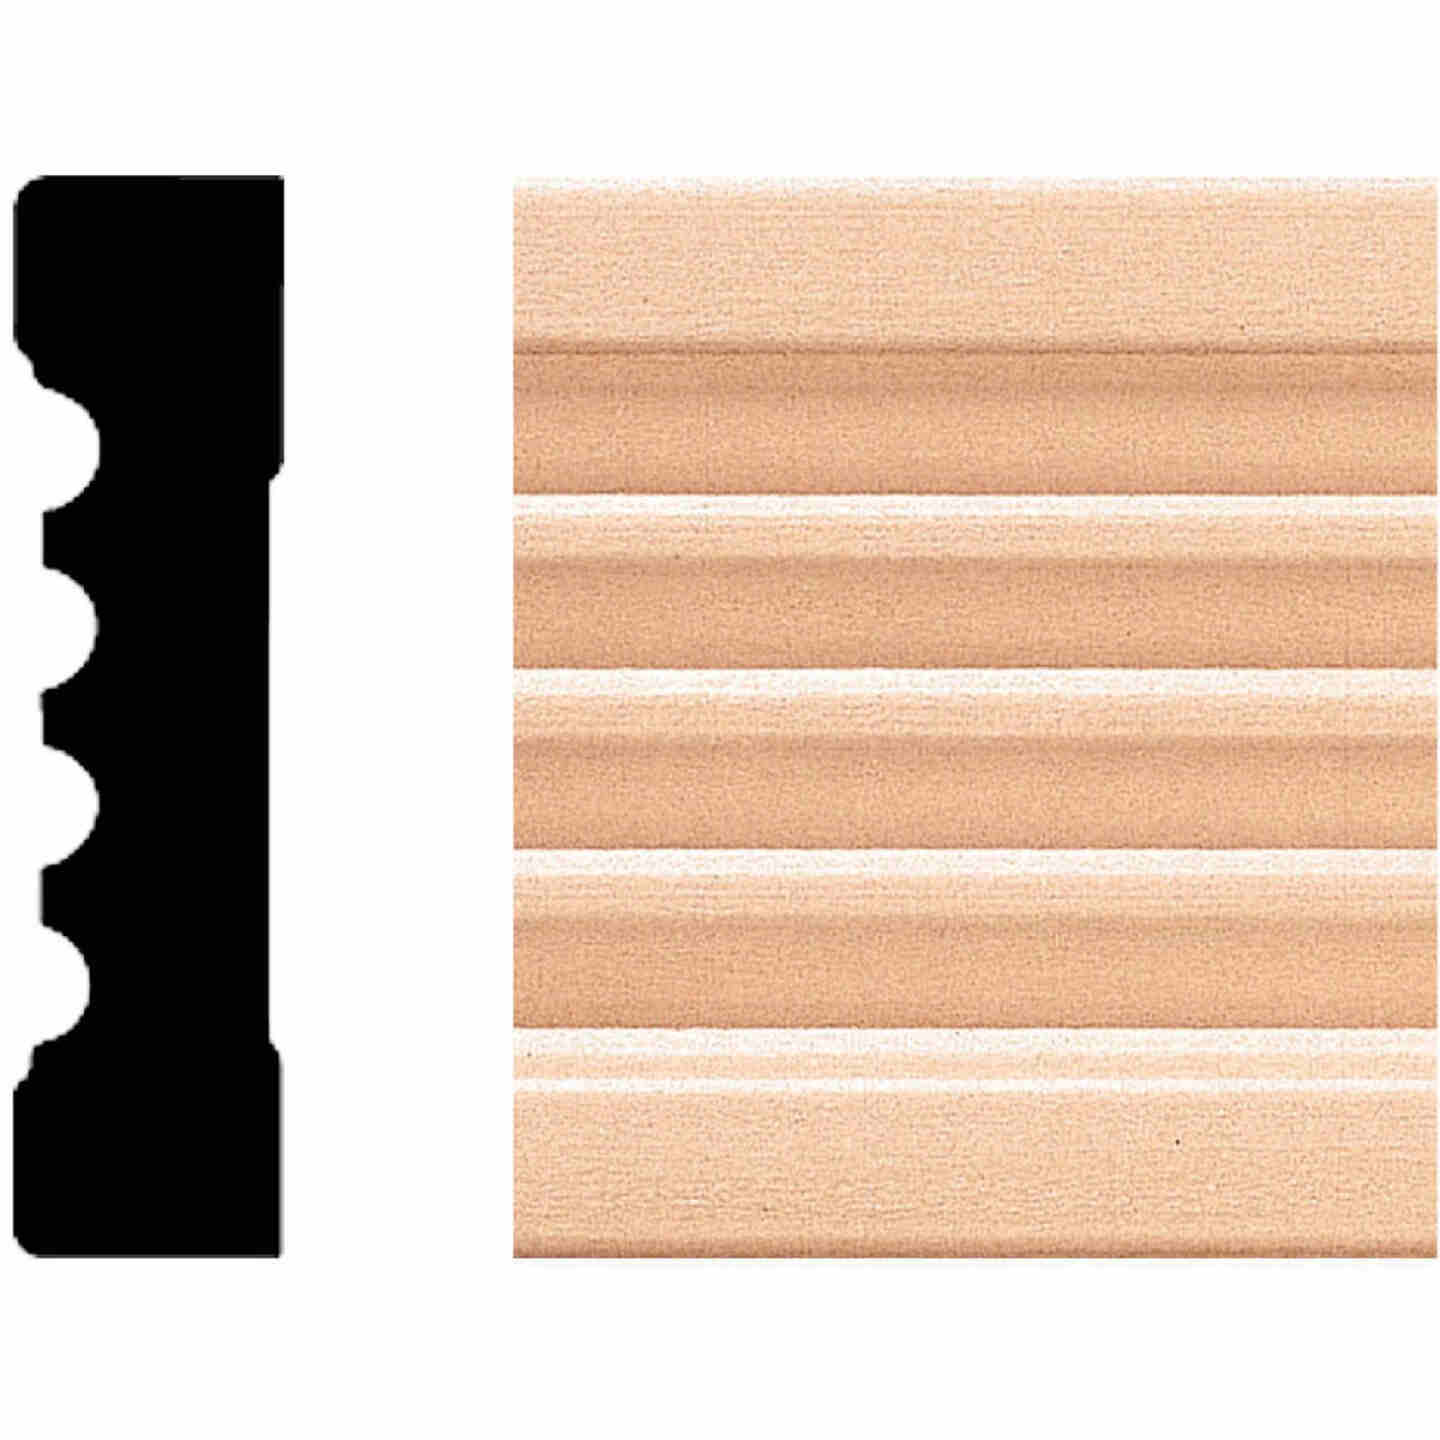 House of Fara 11/16 In. W. x 3 In. H. x 8 Ft. L. Natural Hardwood Fluted Wood Casing Image 1